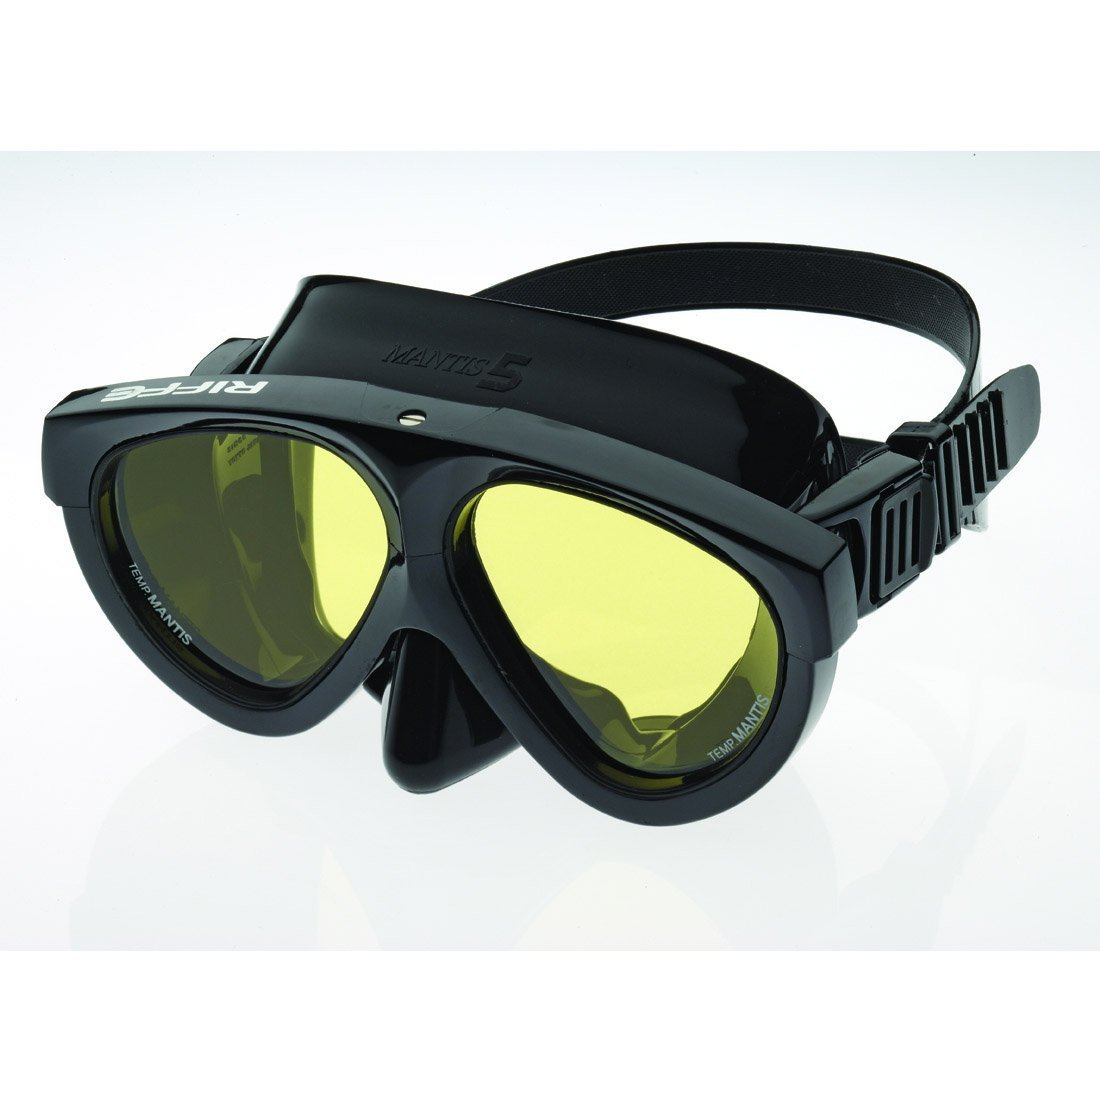 Riffe Mantis 5 Mask